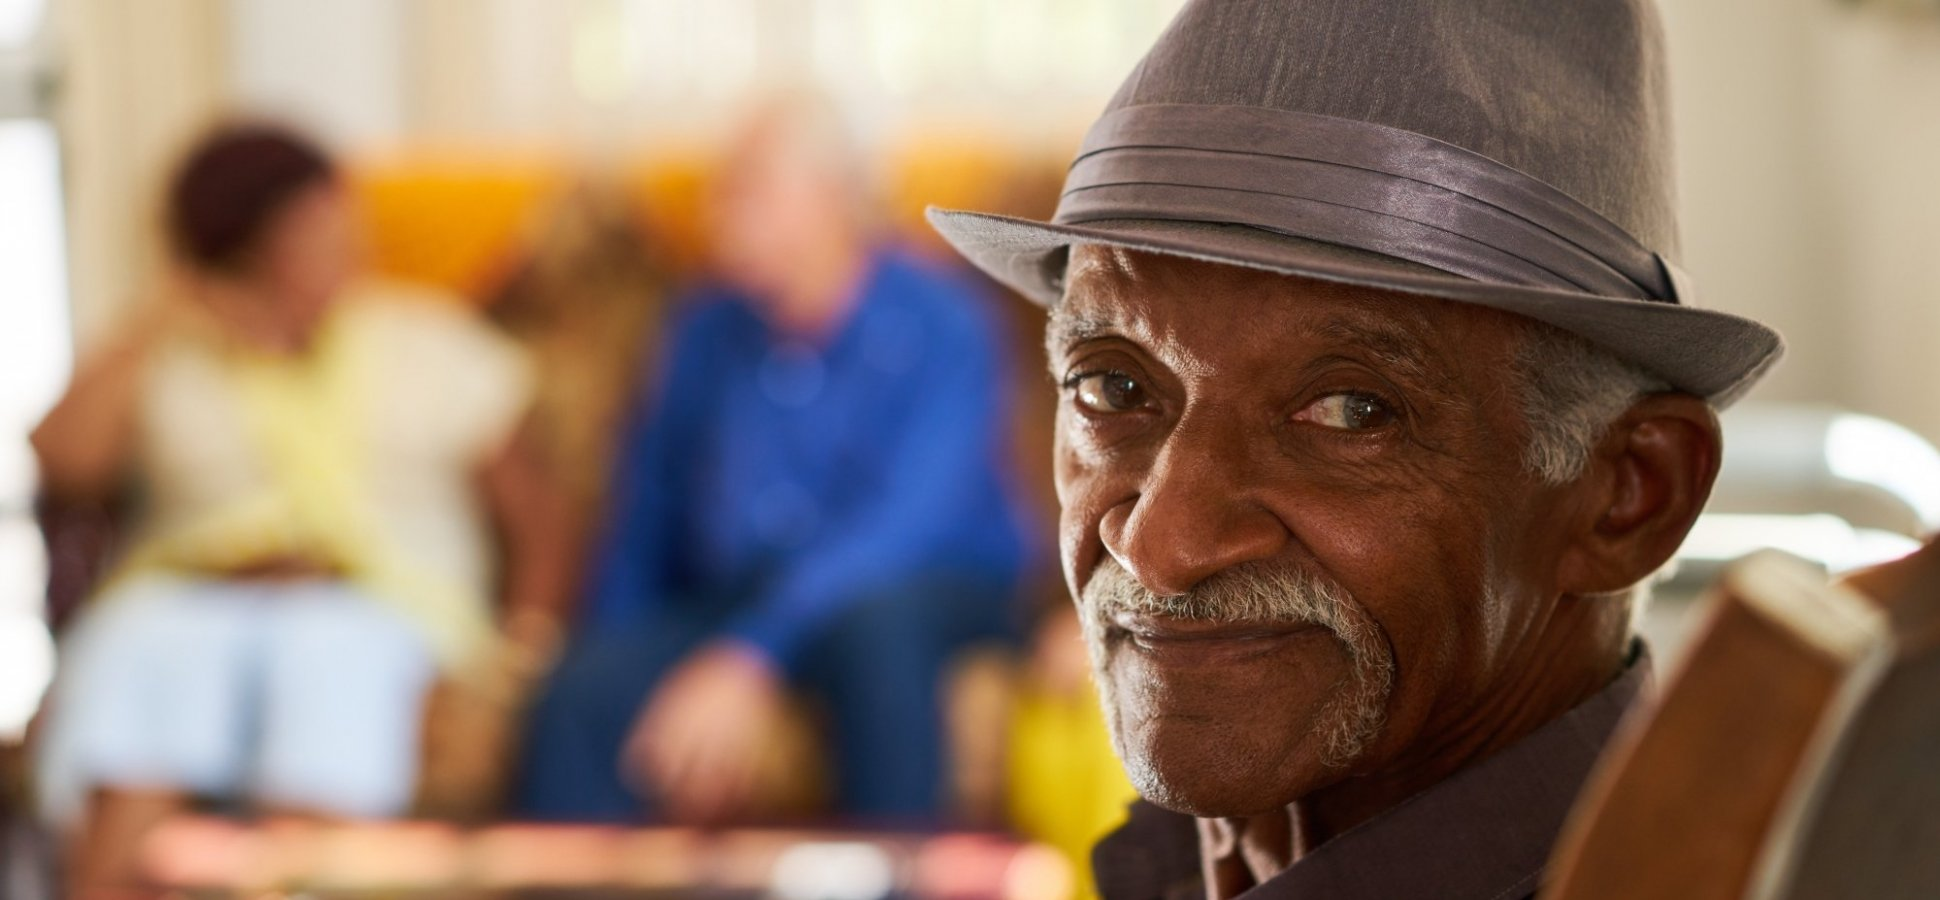 Emotionally Intelligent Advice From an 80-Year-Old Man